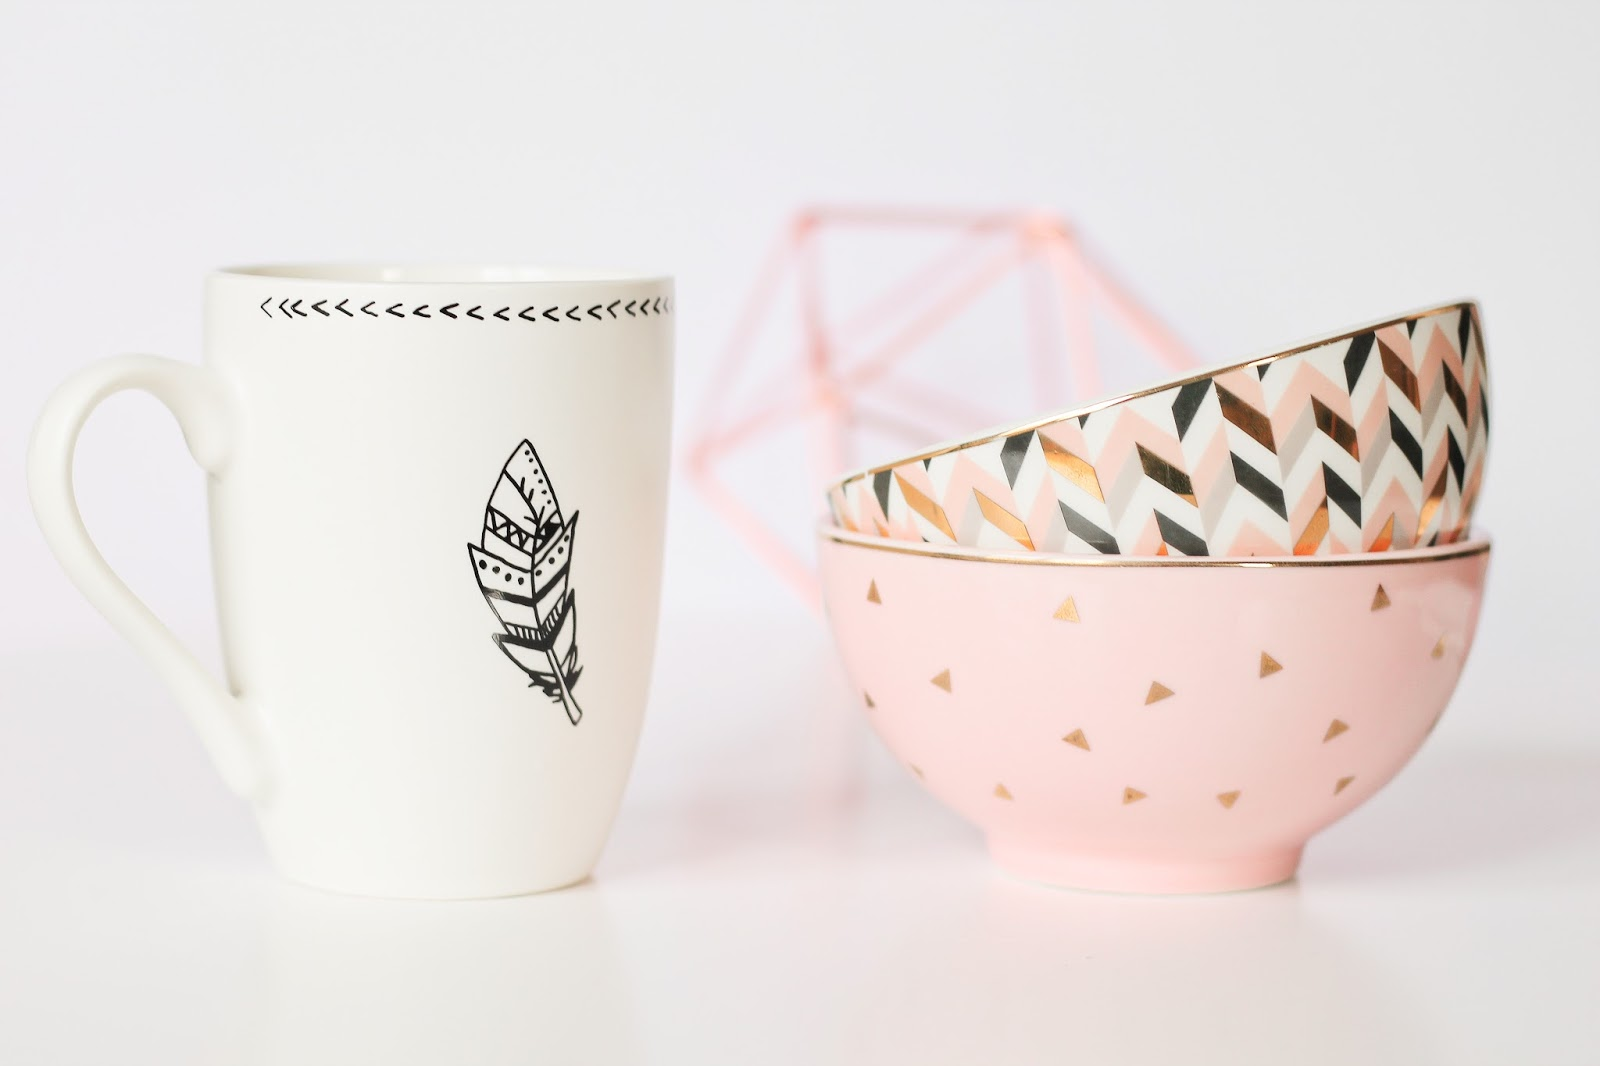 les gommettes de melo haul video shopping achat maisons du monde déco decoration home maison intérieur soldes hiver 2017 rose gold cuivre tendance scandinave blanc épuré mug tasse fleche bol hello madame rose triangle dore chevrons nouvelle collection